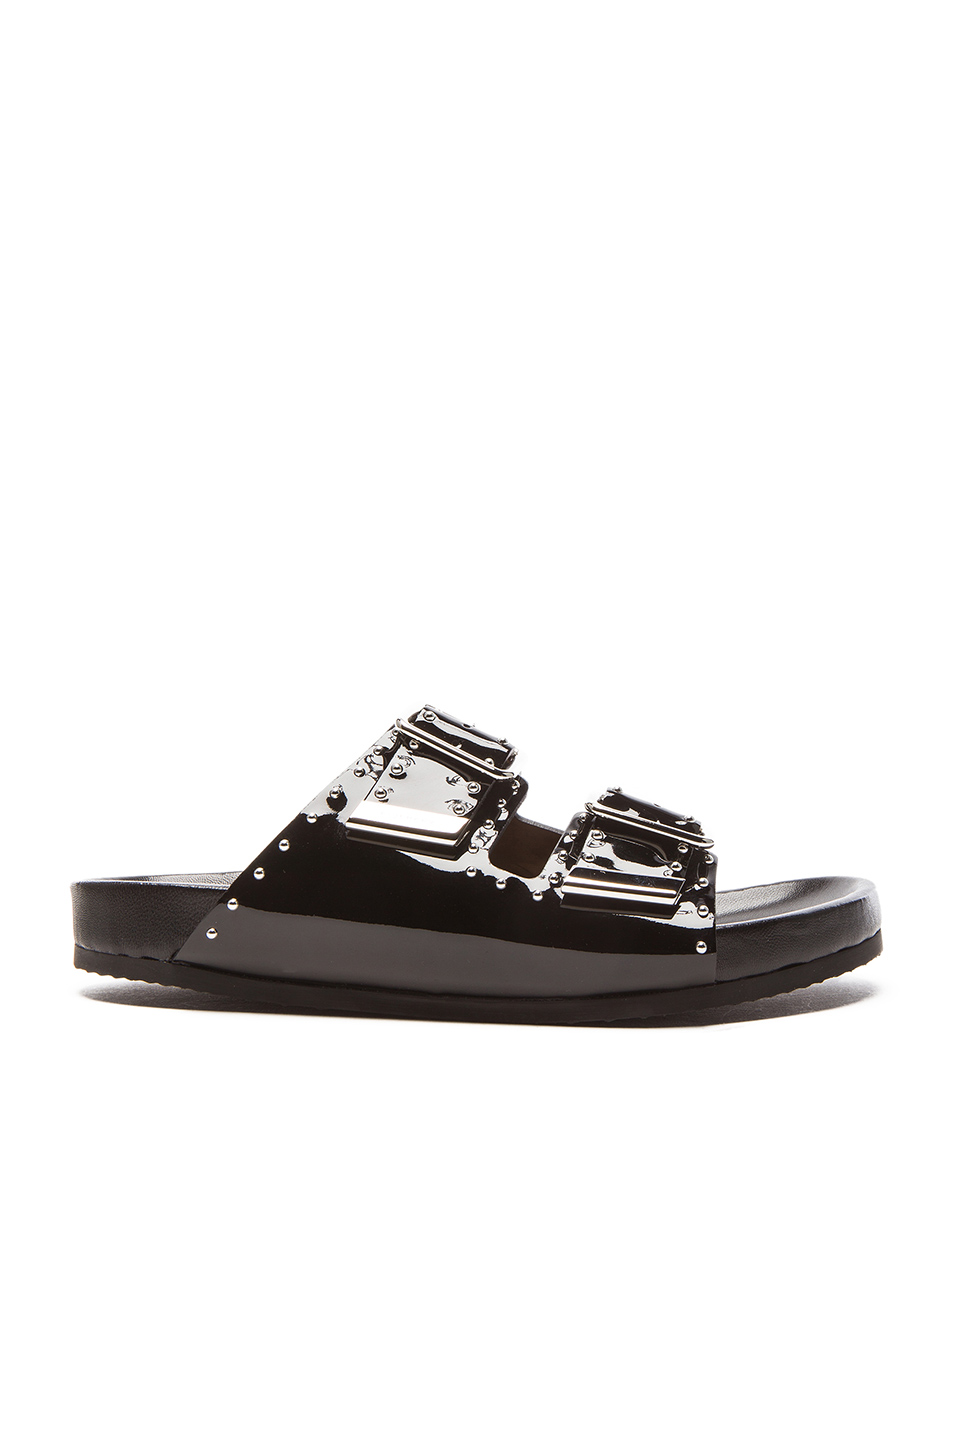 GIVENCHY Swiss Studs Patent Leather Sandals in Black